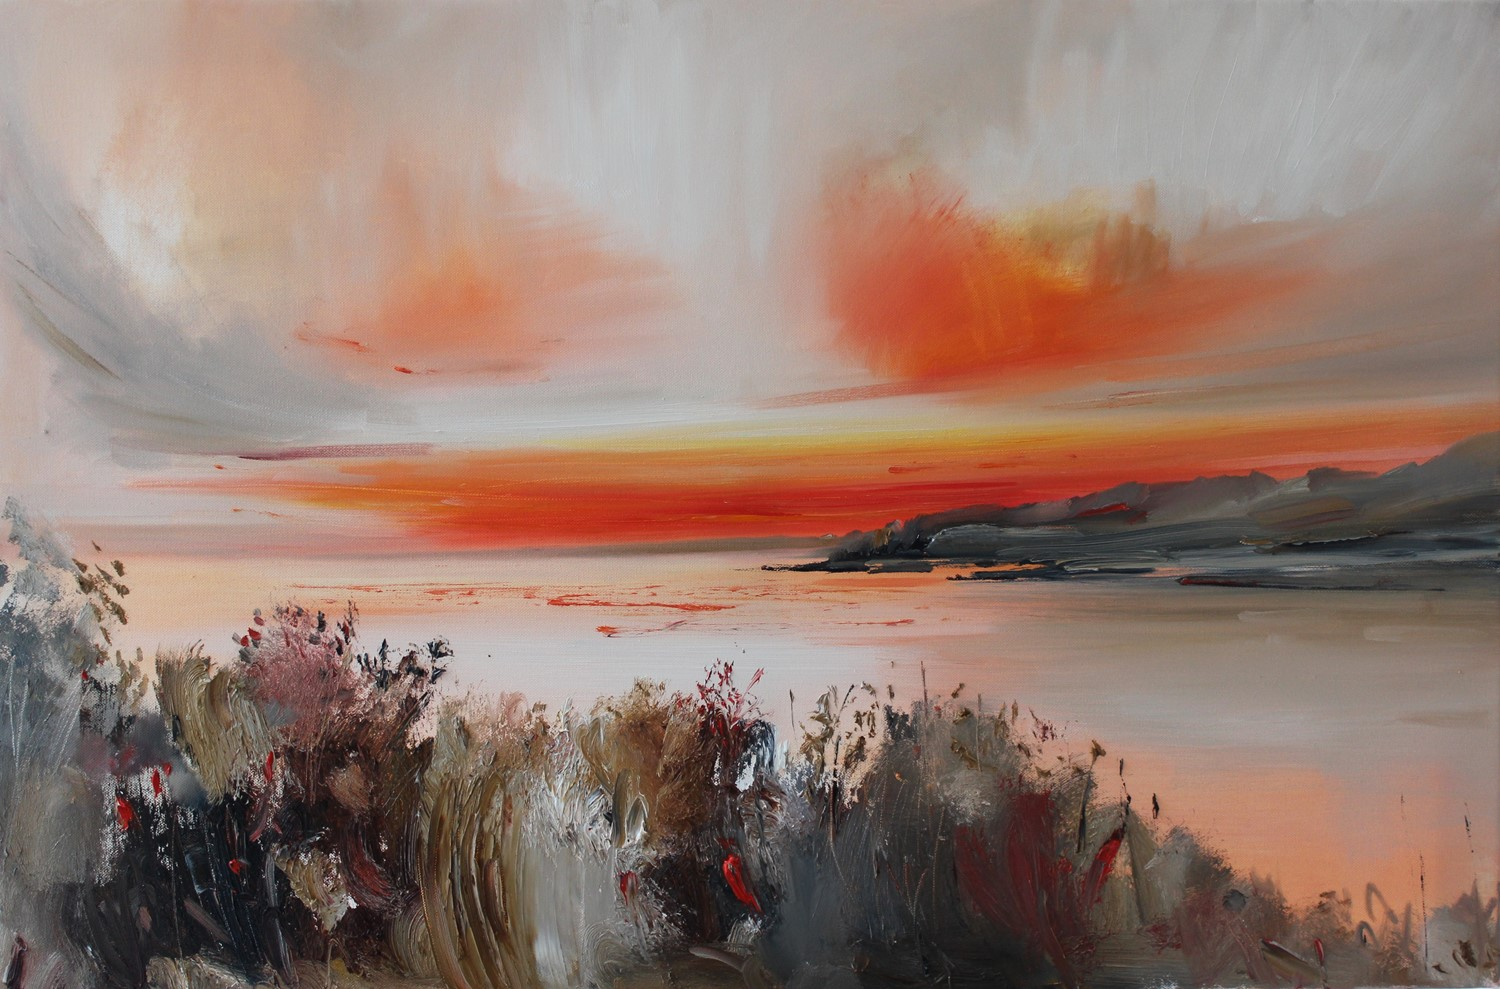 'Last warmth in Autumn' by artist Rosanne Barr